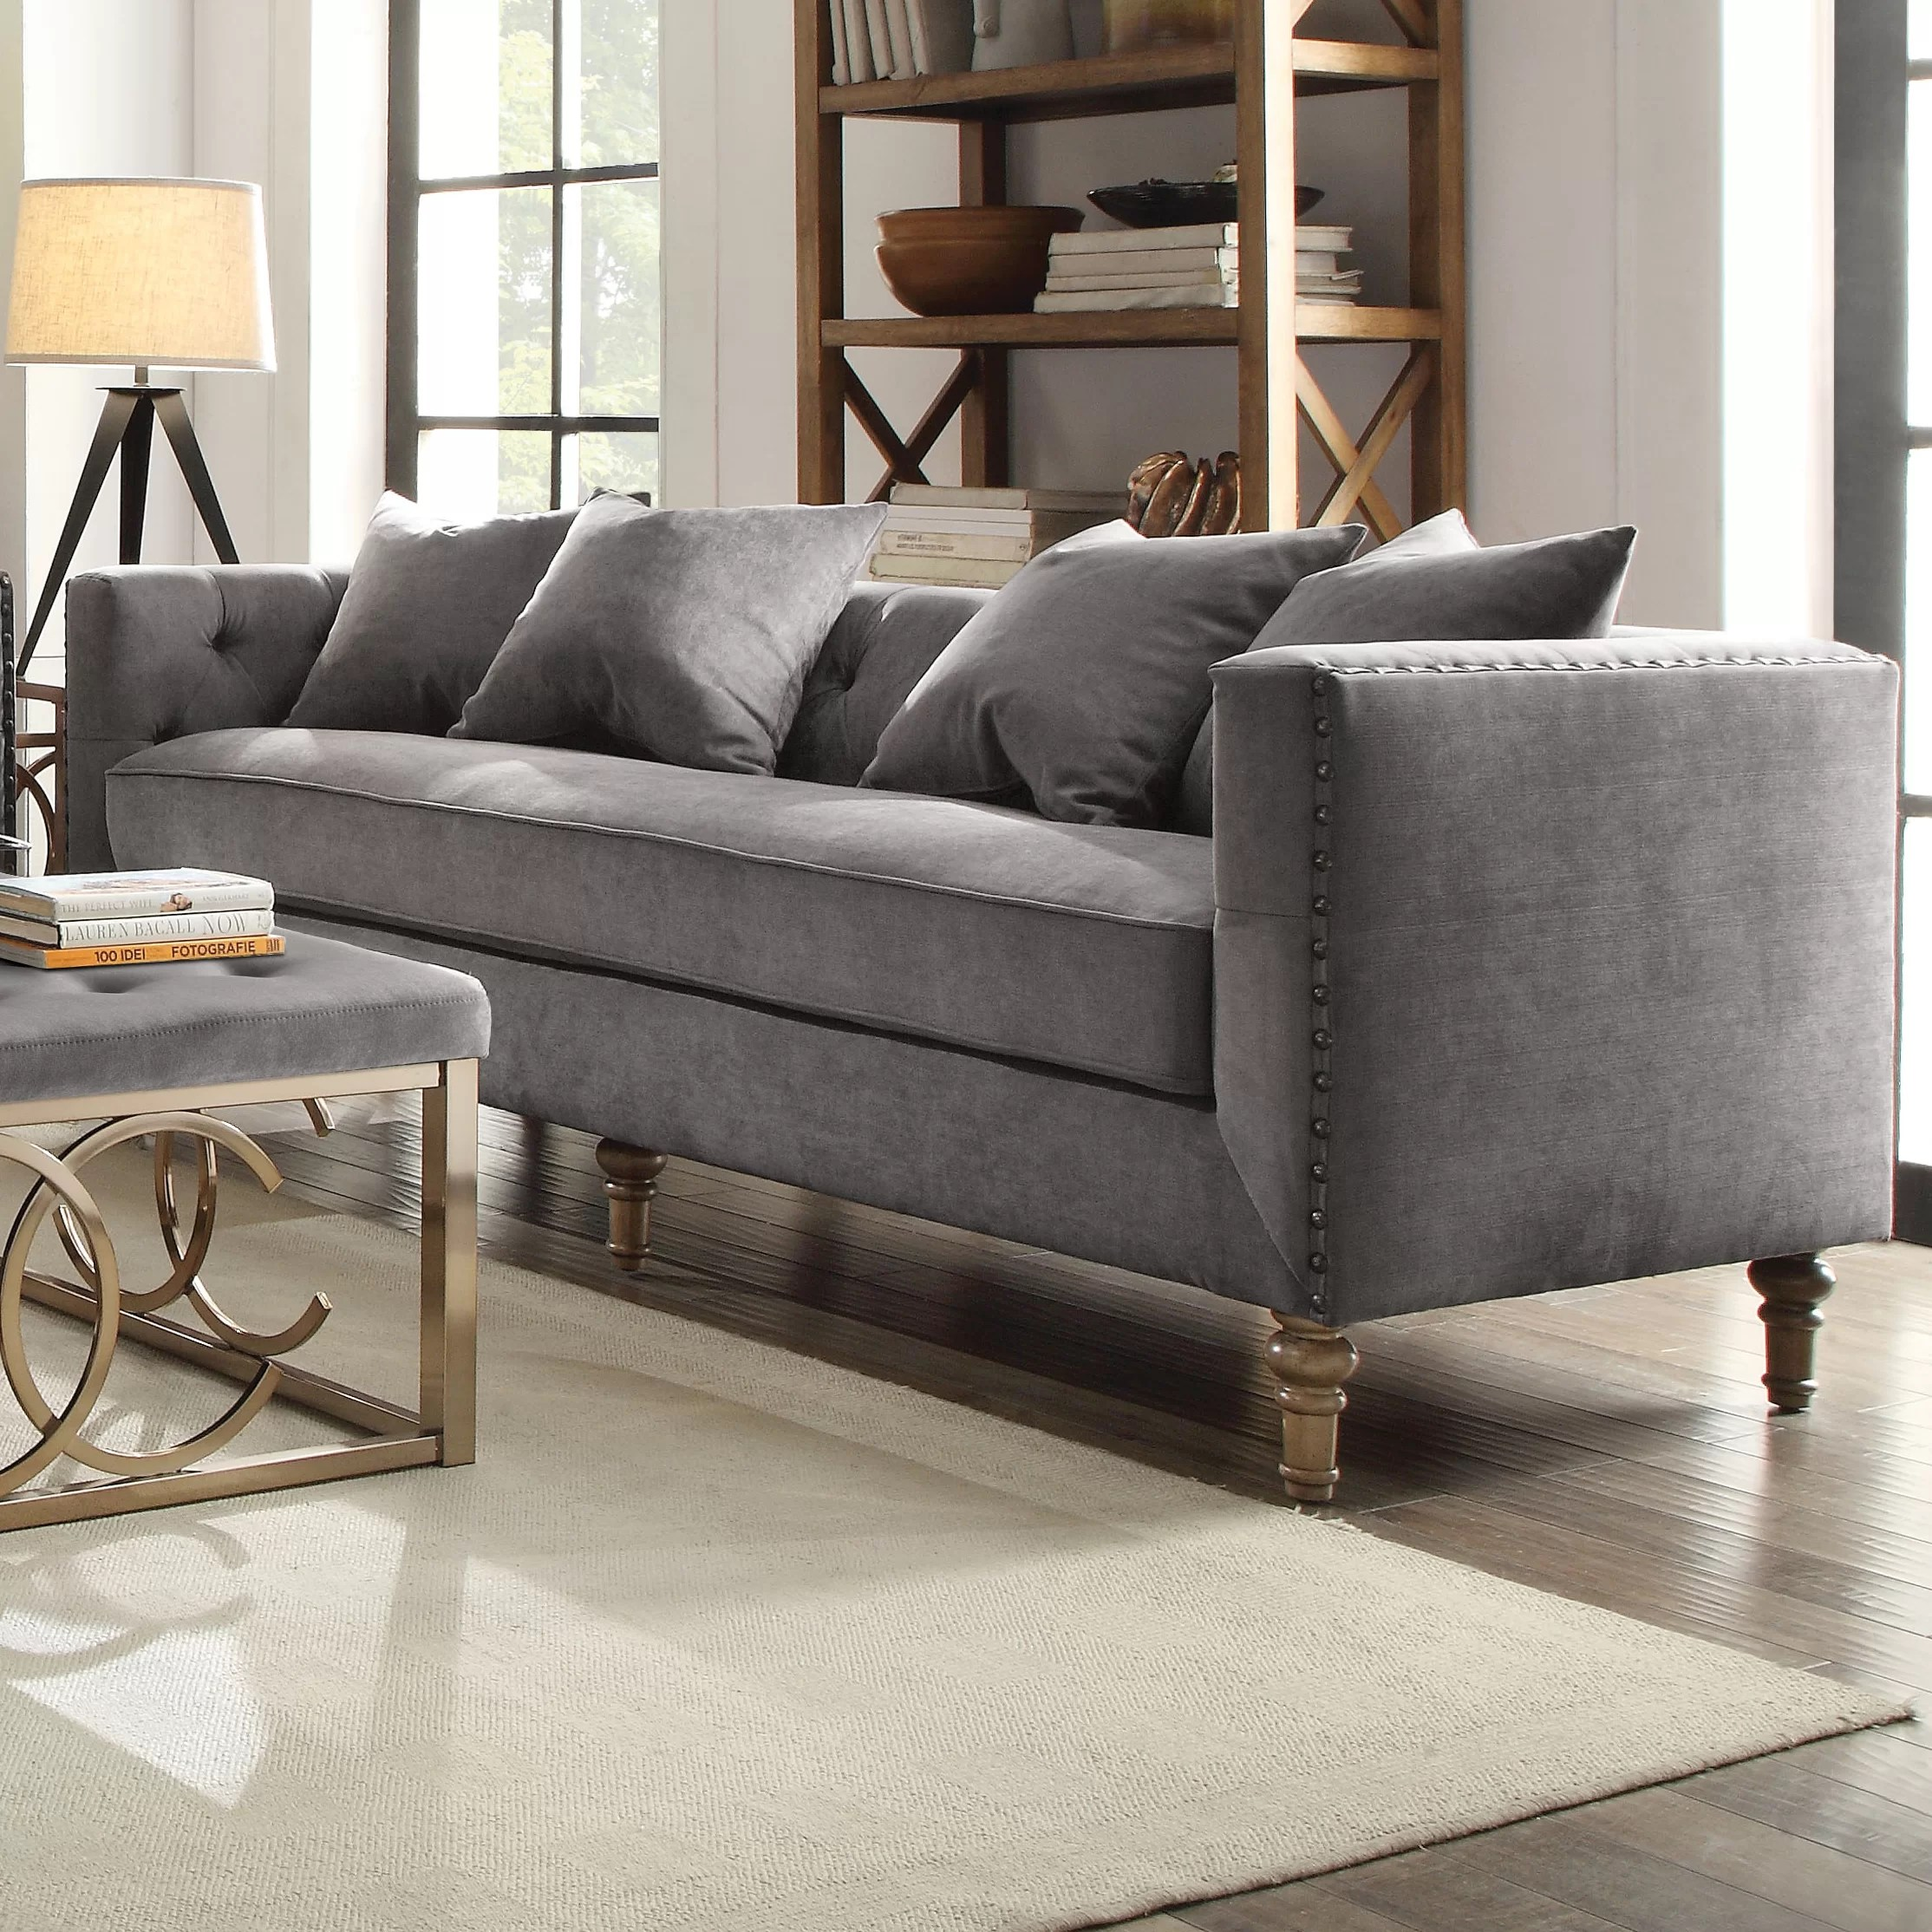 Sofa In Chesterfield Look Croyd Chesterfield Sofa